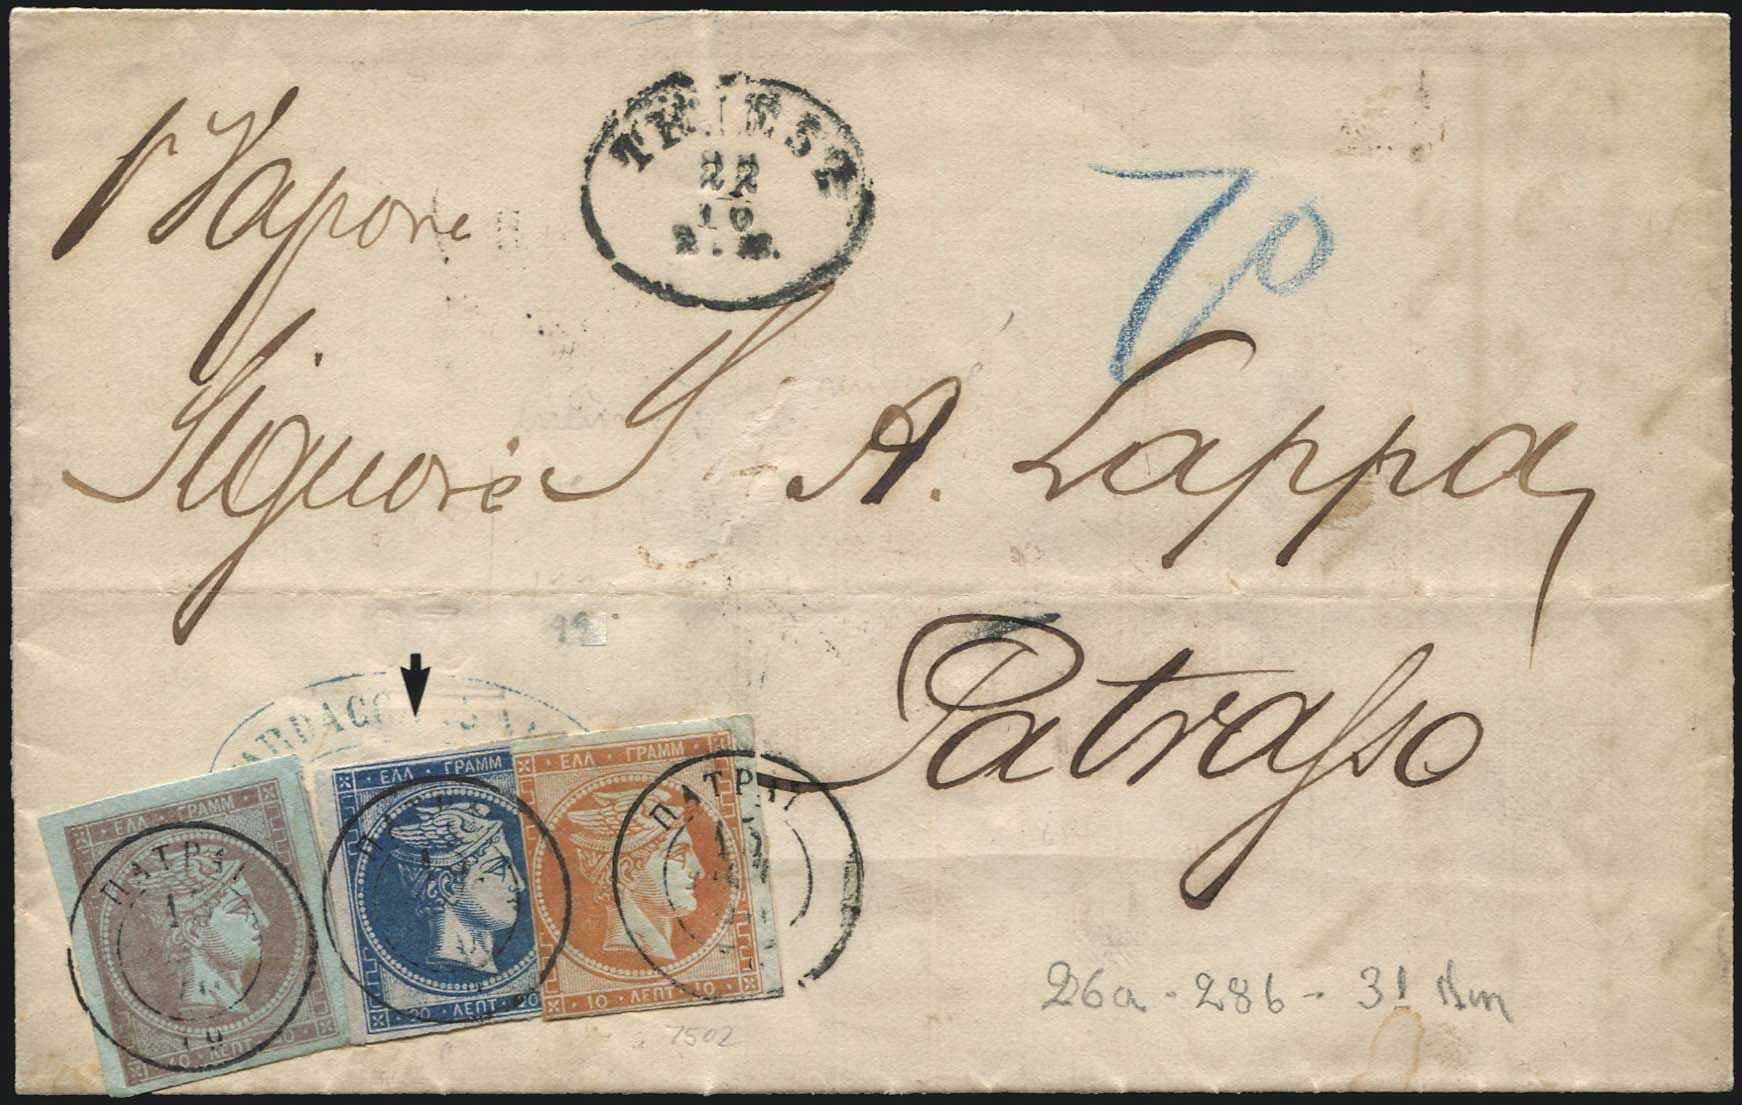 Lot 205 - -  LARGE HERMES HEAD 1870 special athens printing -  A. Karamitsos Postal & Live Internet Auction 681 General Philatelic Auction